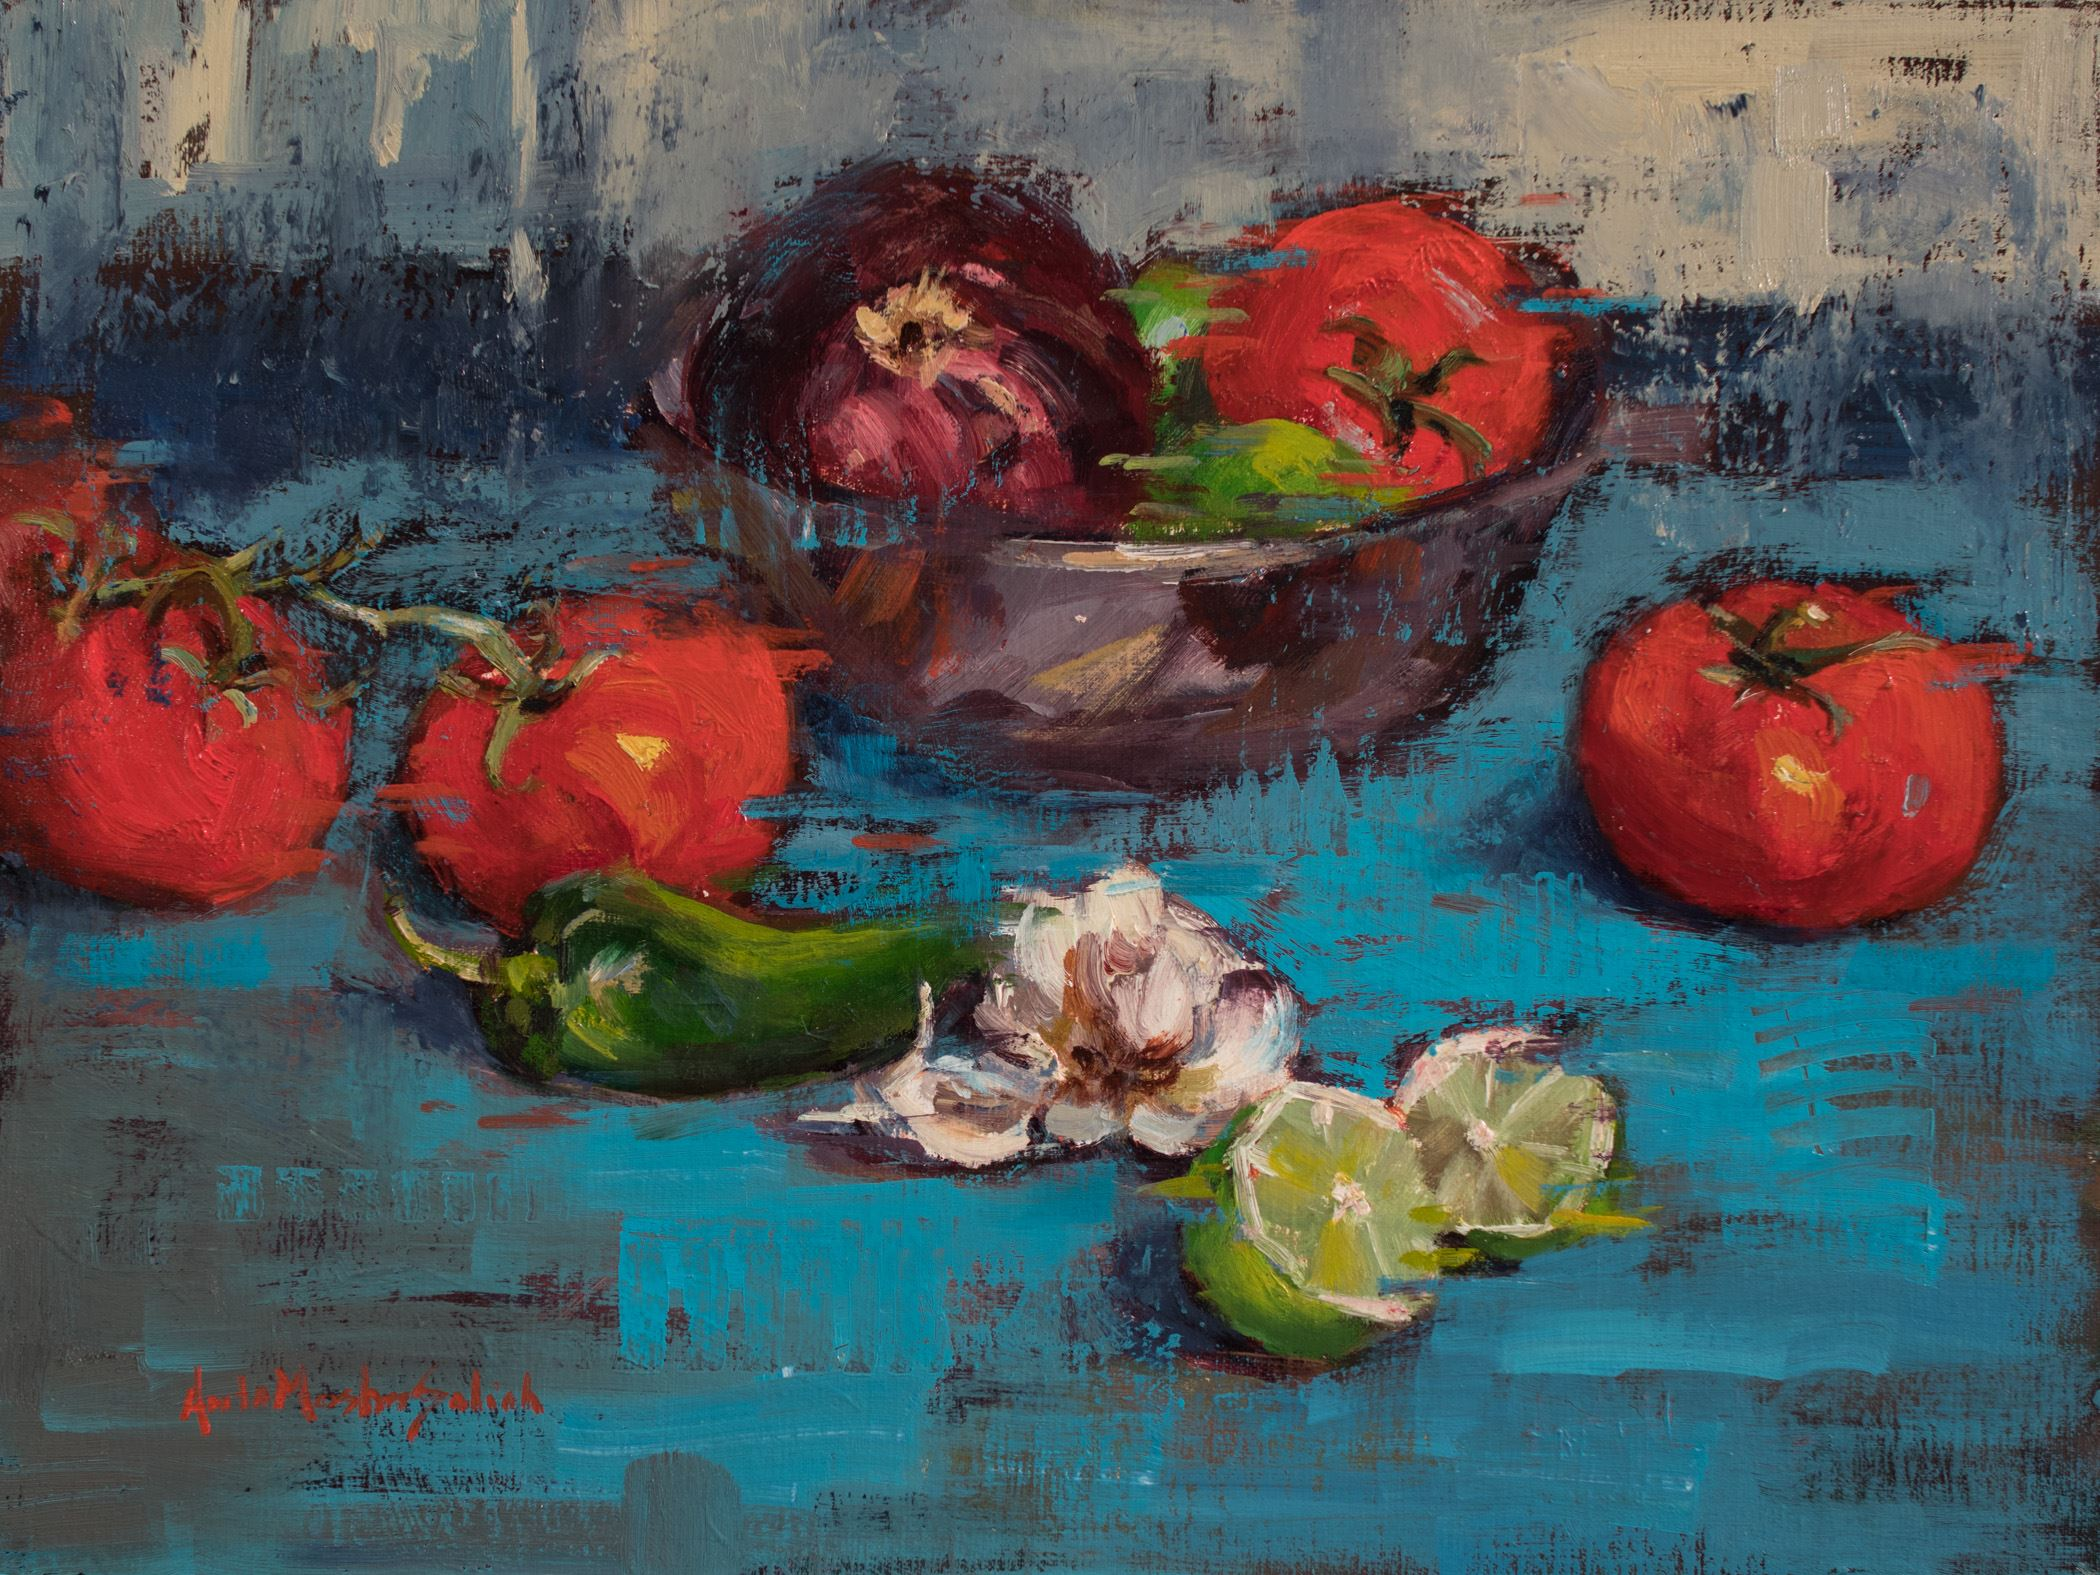 Painting the Colorful and Expressive Still LIfe